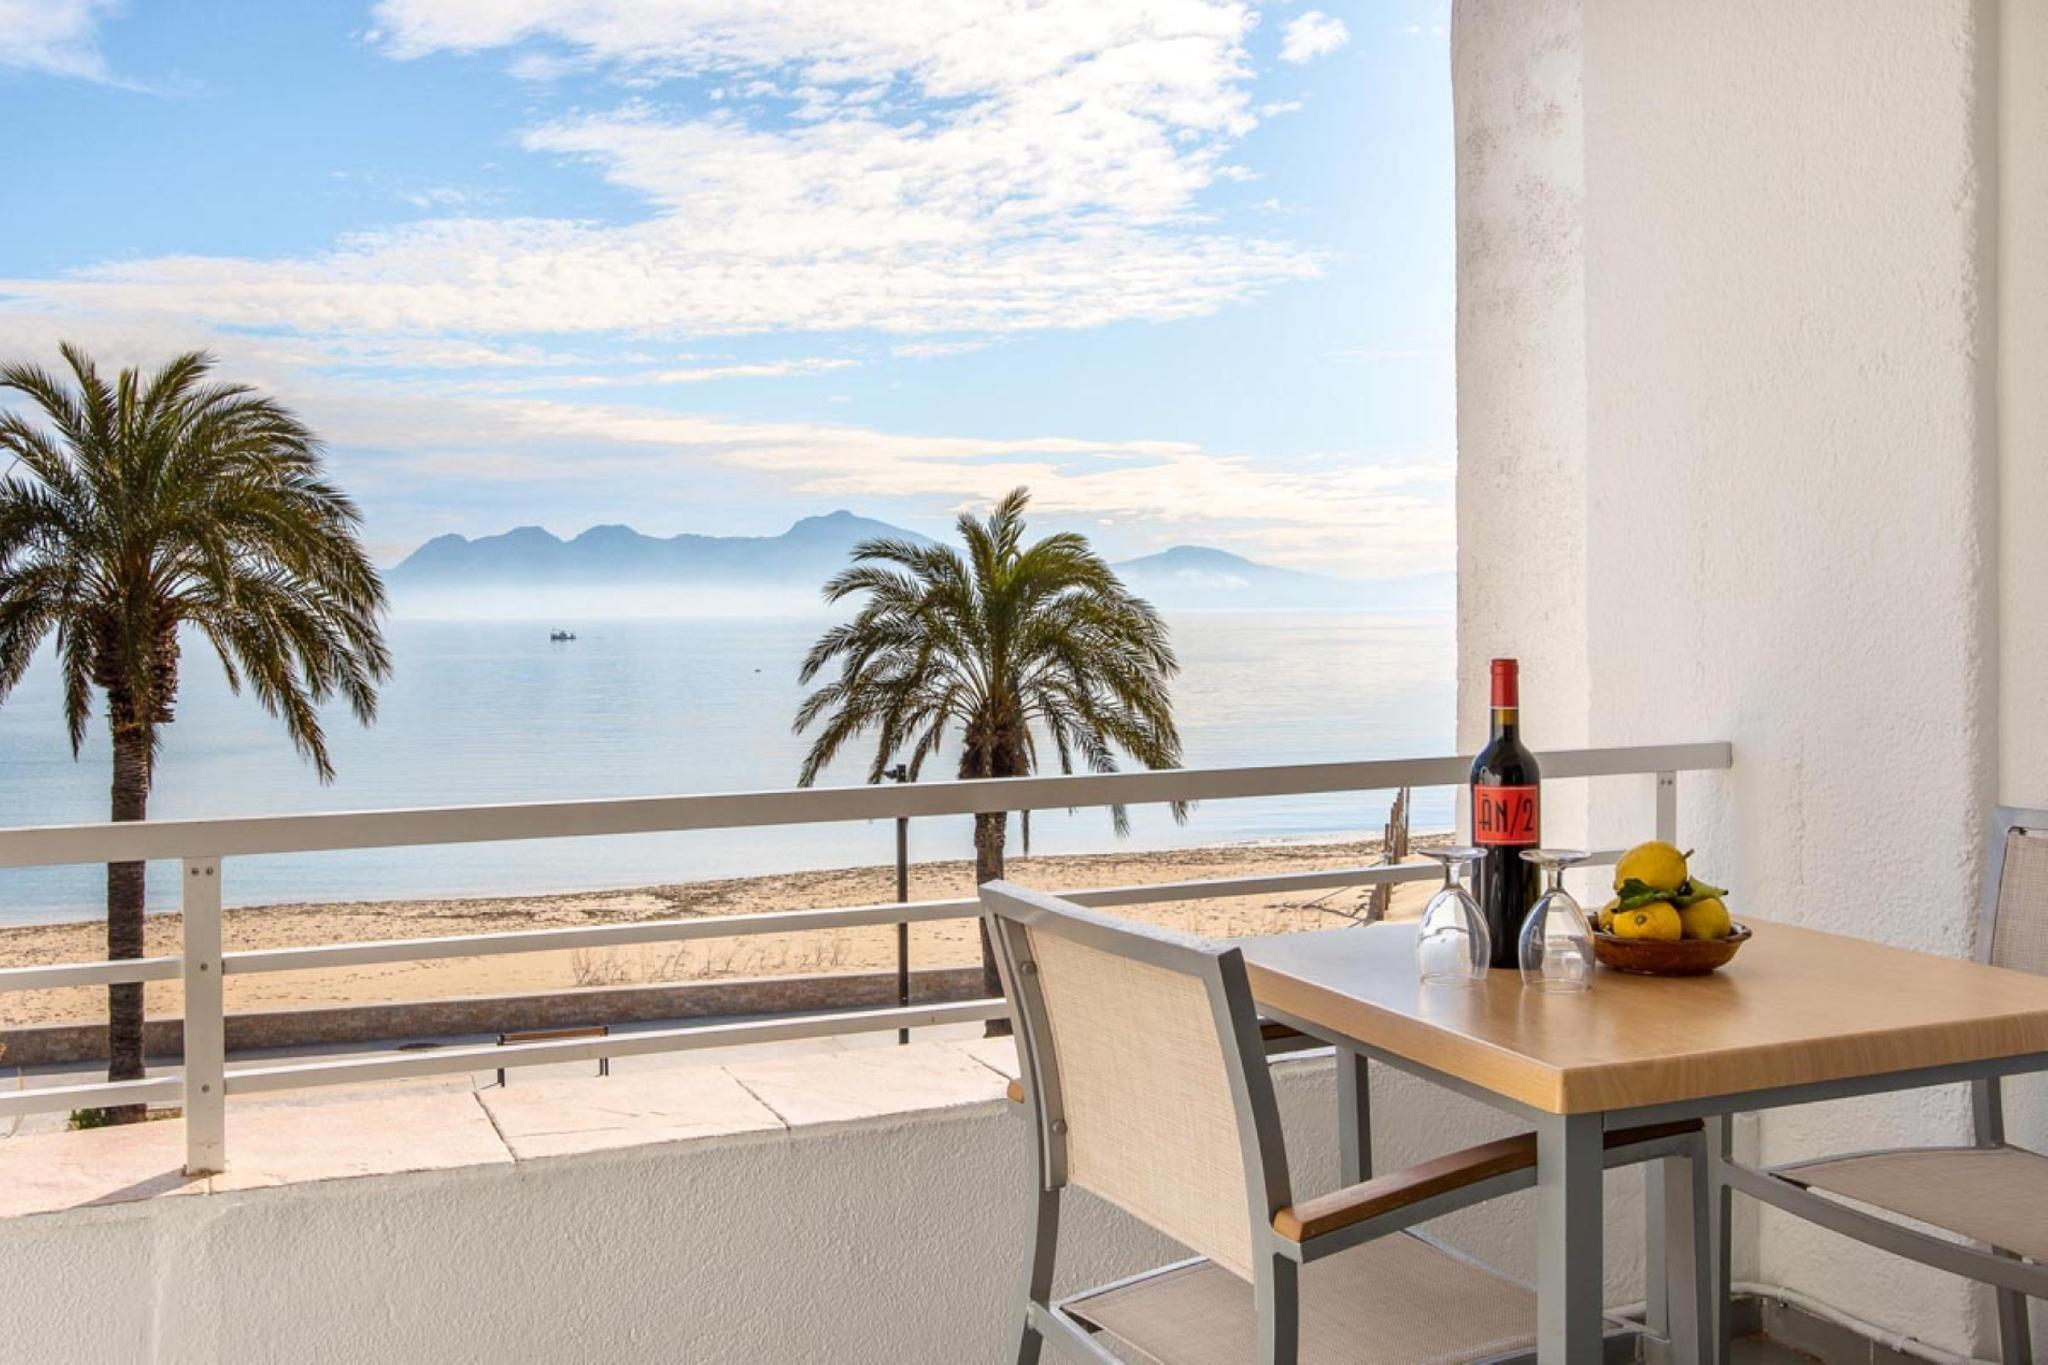 107618   Apartment In Puerto Pollensa